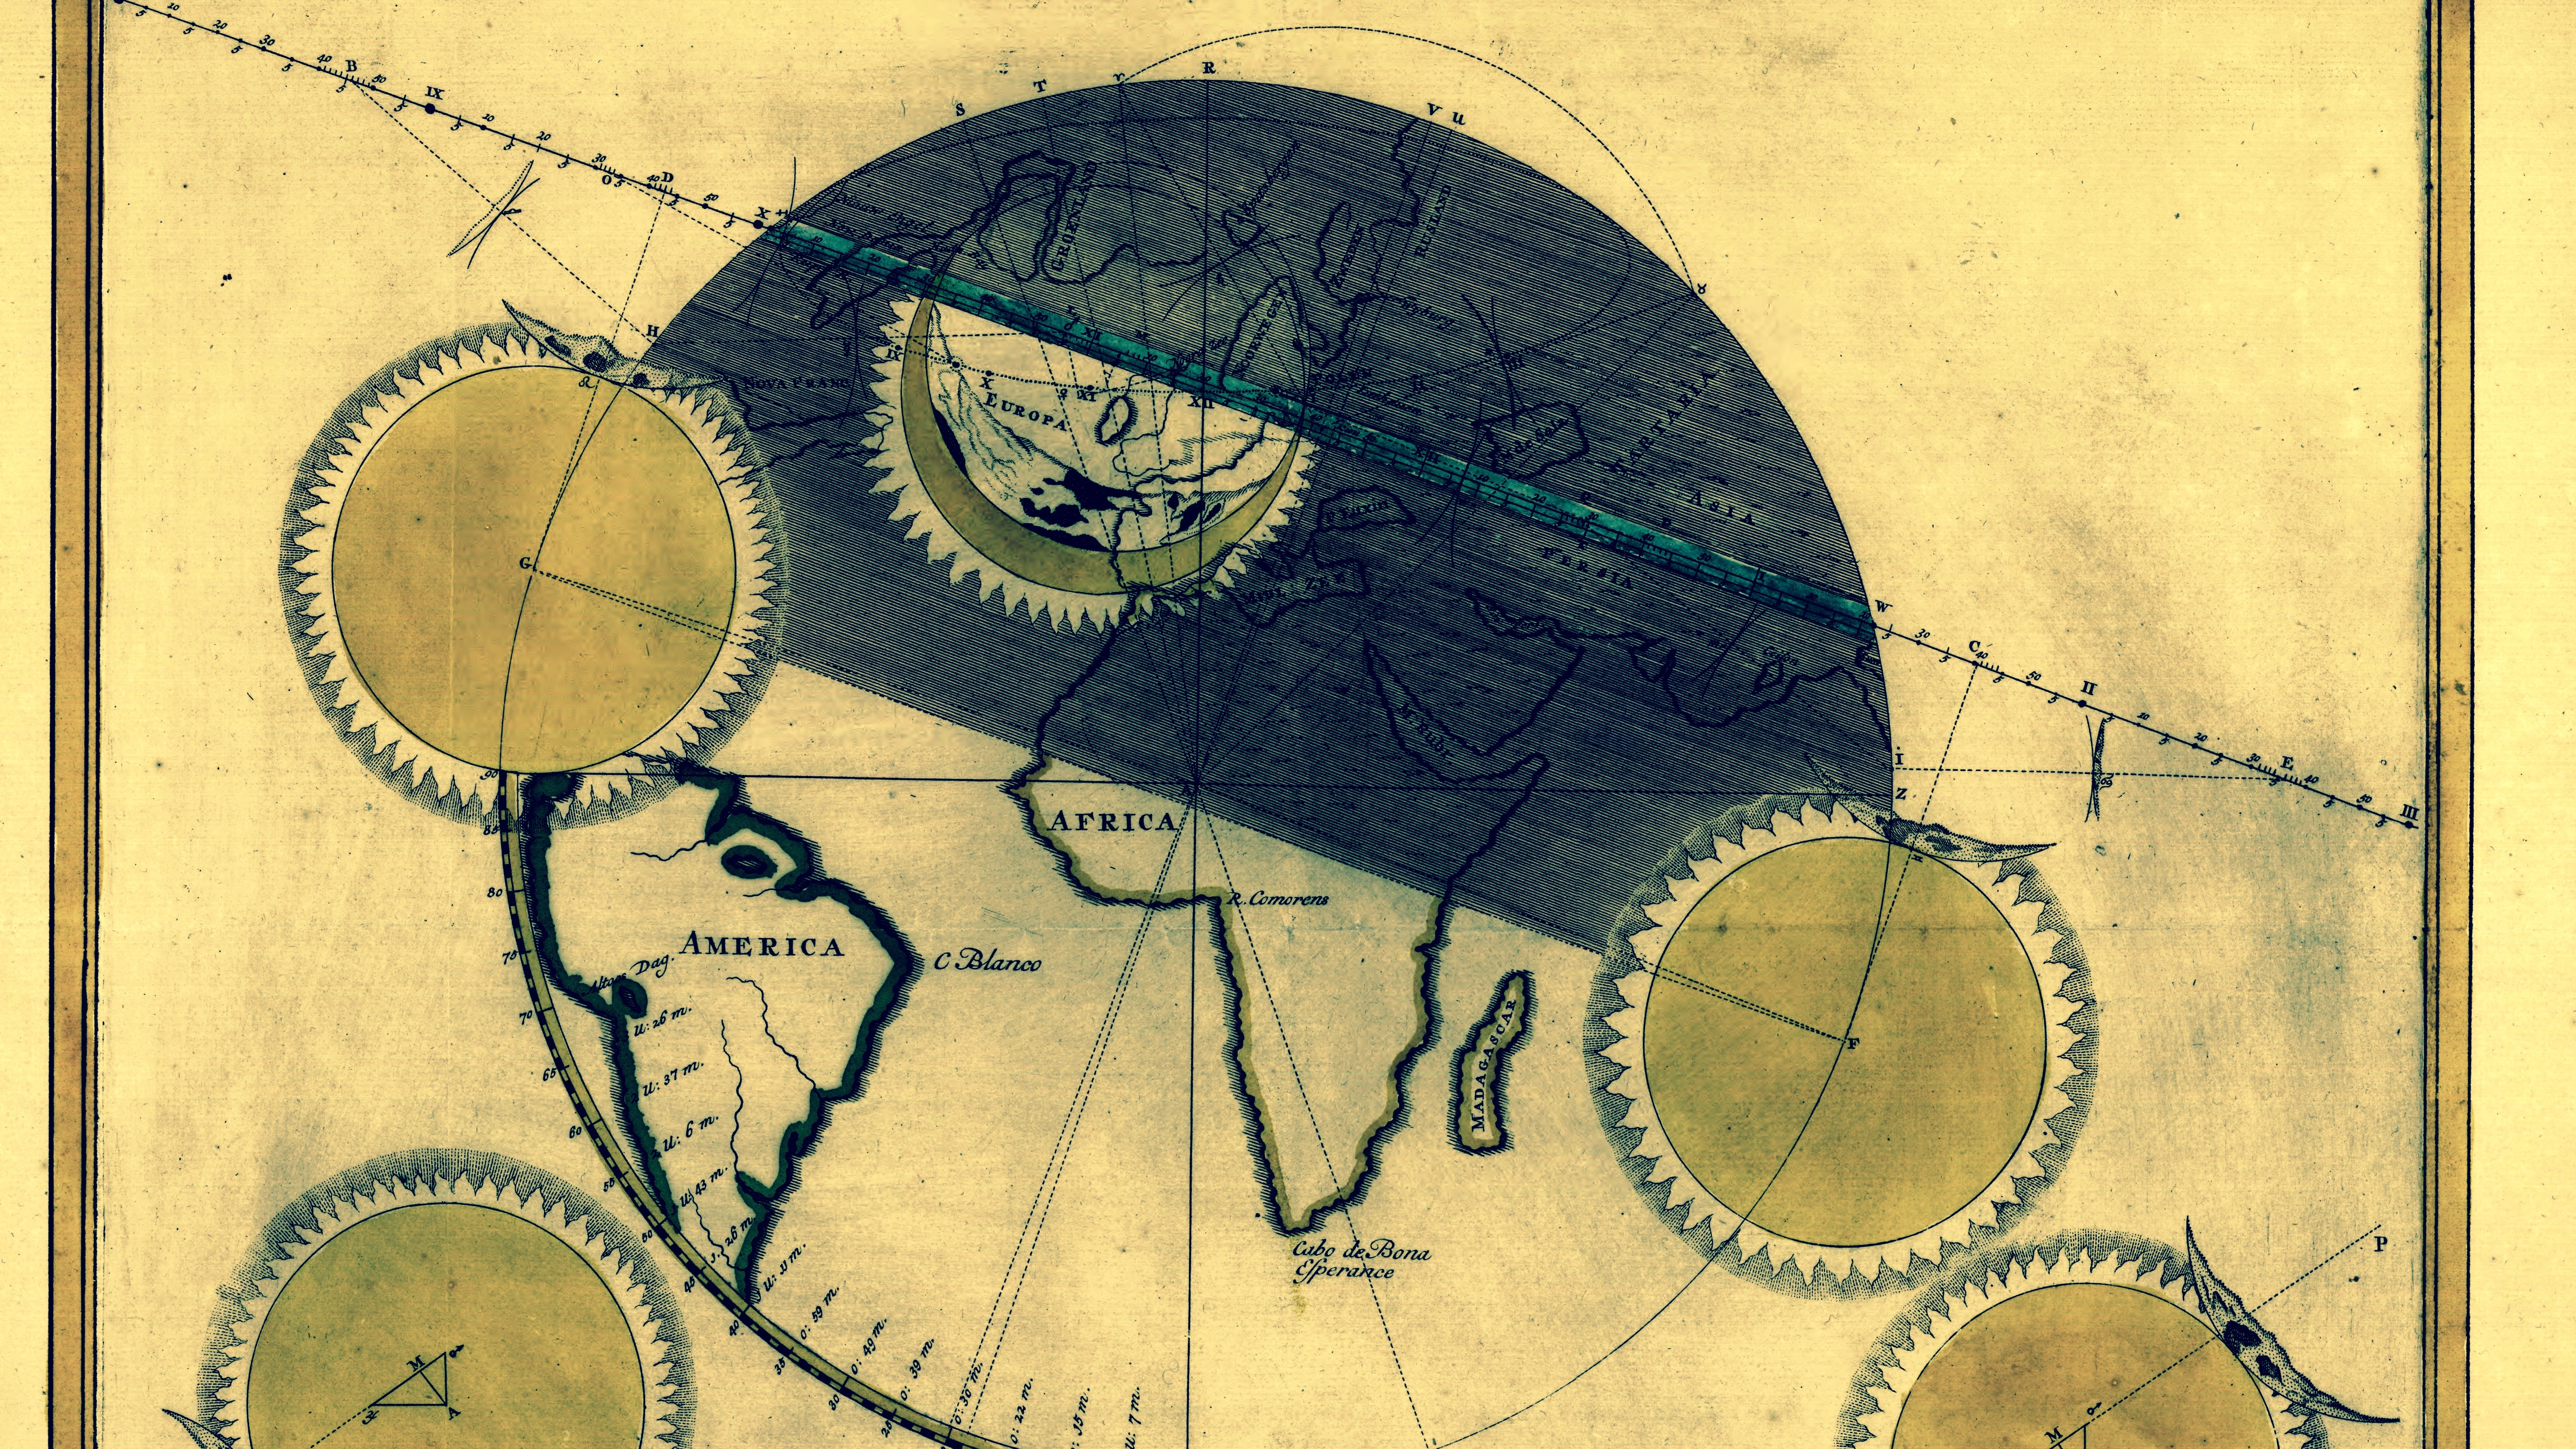 July 25, 1748 eclipse map by Simon Panser.